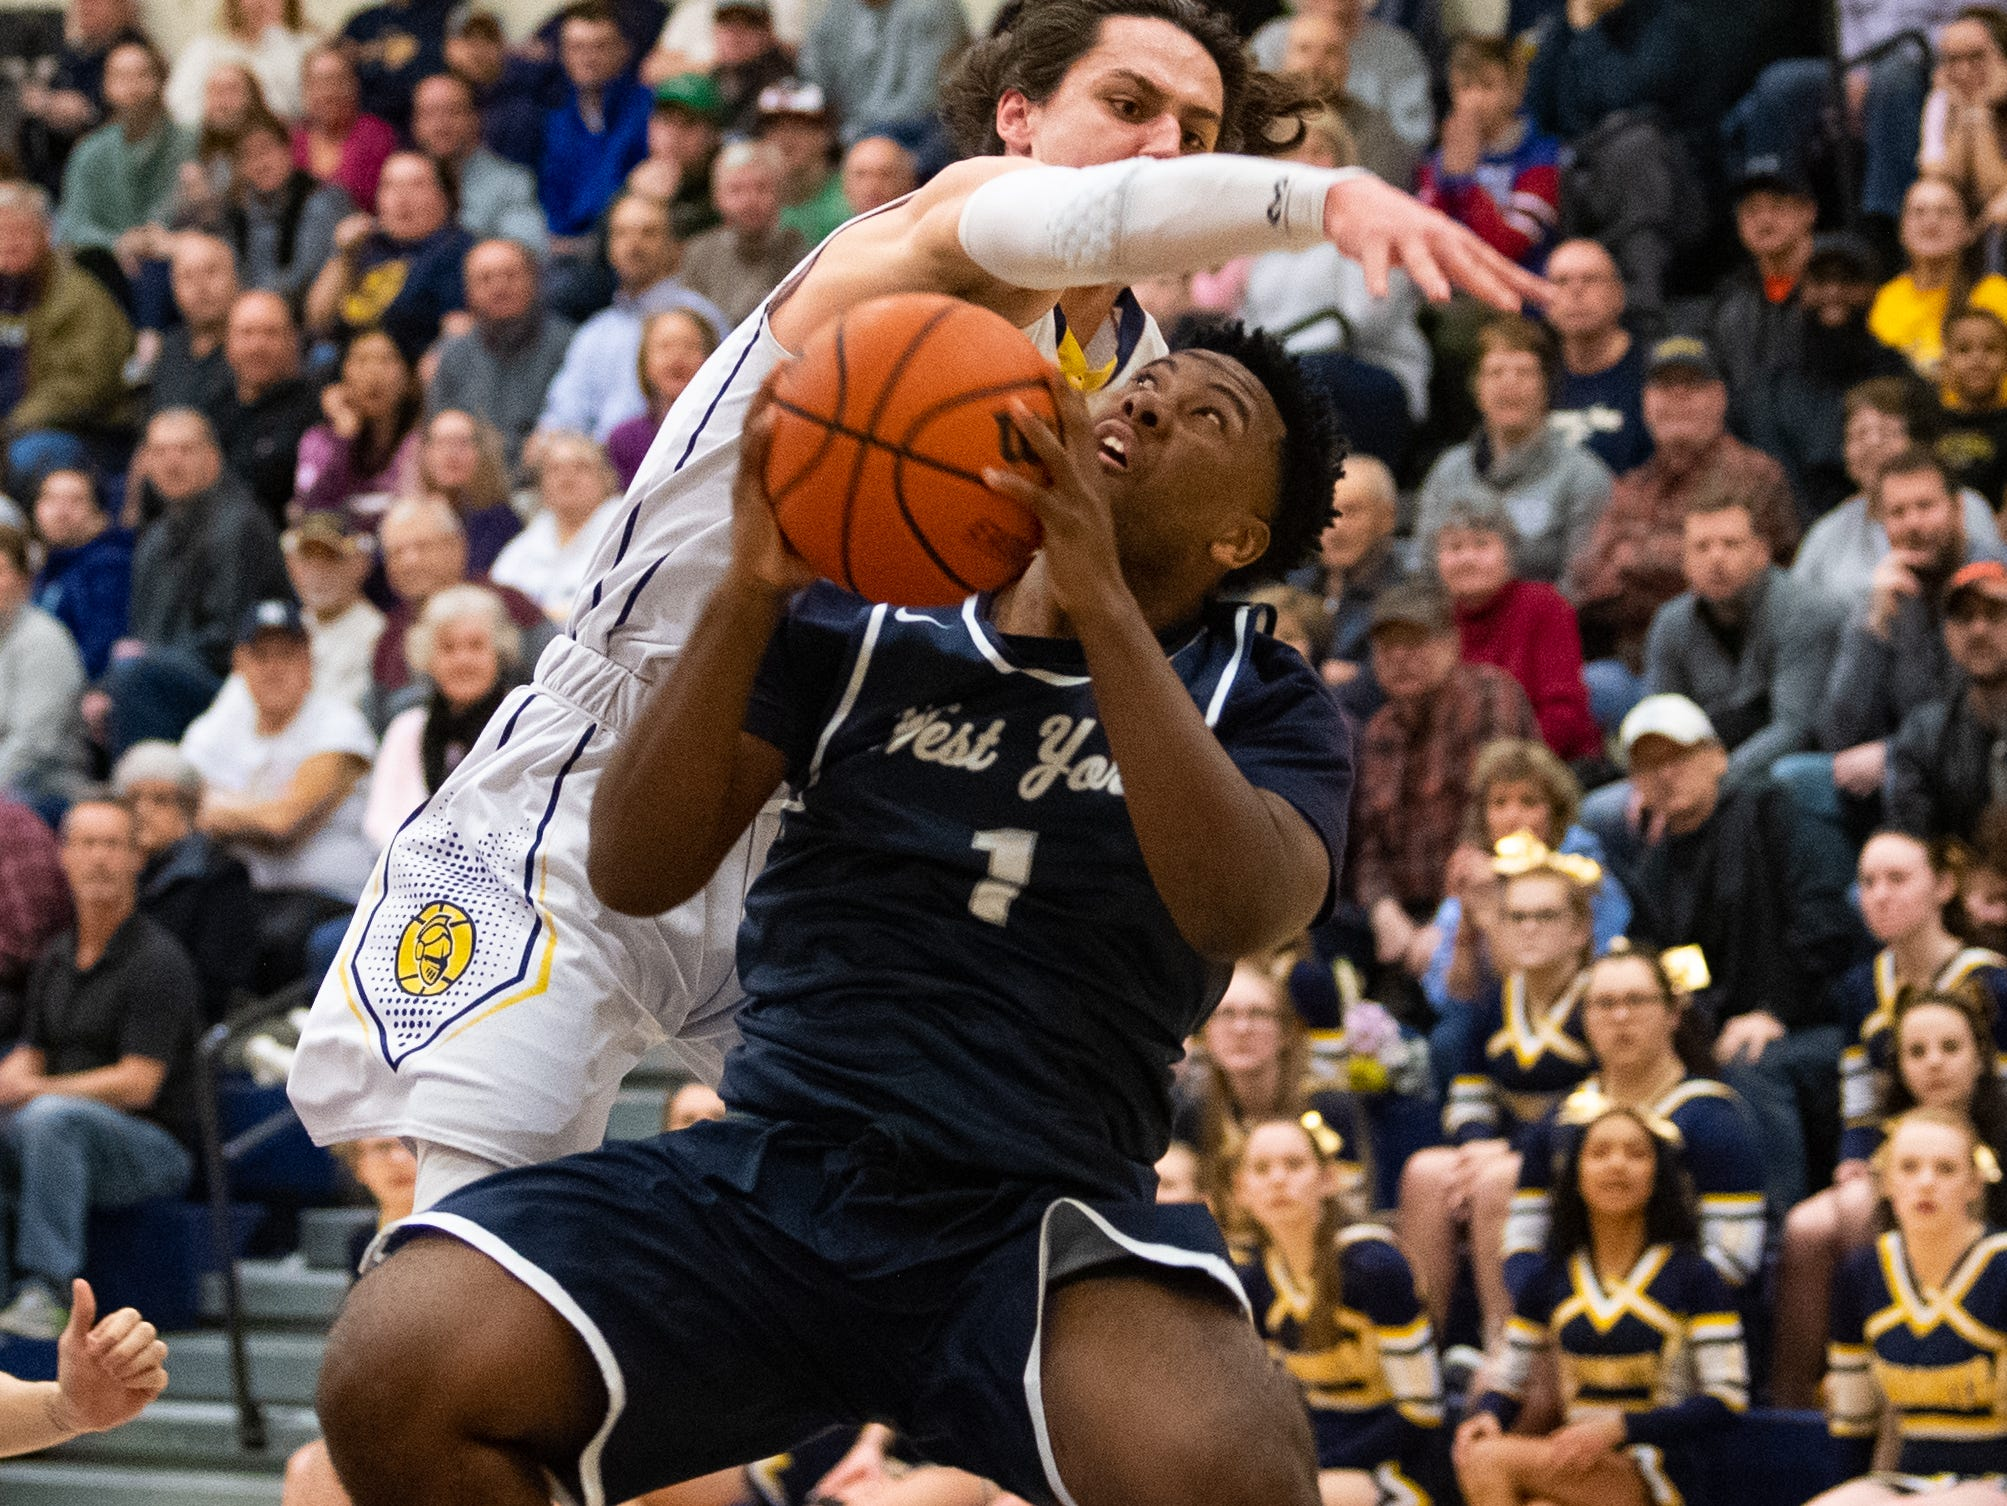 Kelvin Matthews (1) tries to get a shot off during the YAIAA boys' basketball game between Eastern York and West York, Friday, January 25, 2019. The Golden Knights defeated the Bulldogs 59 to 55.